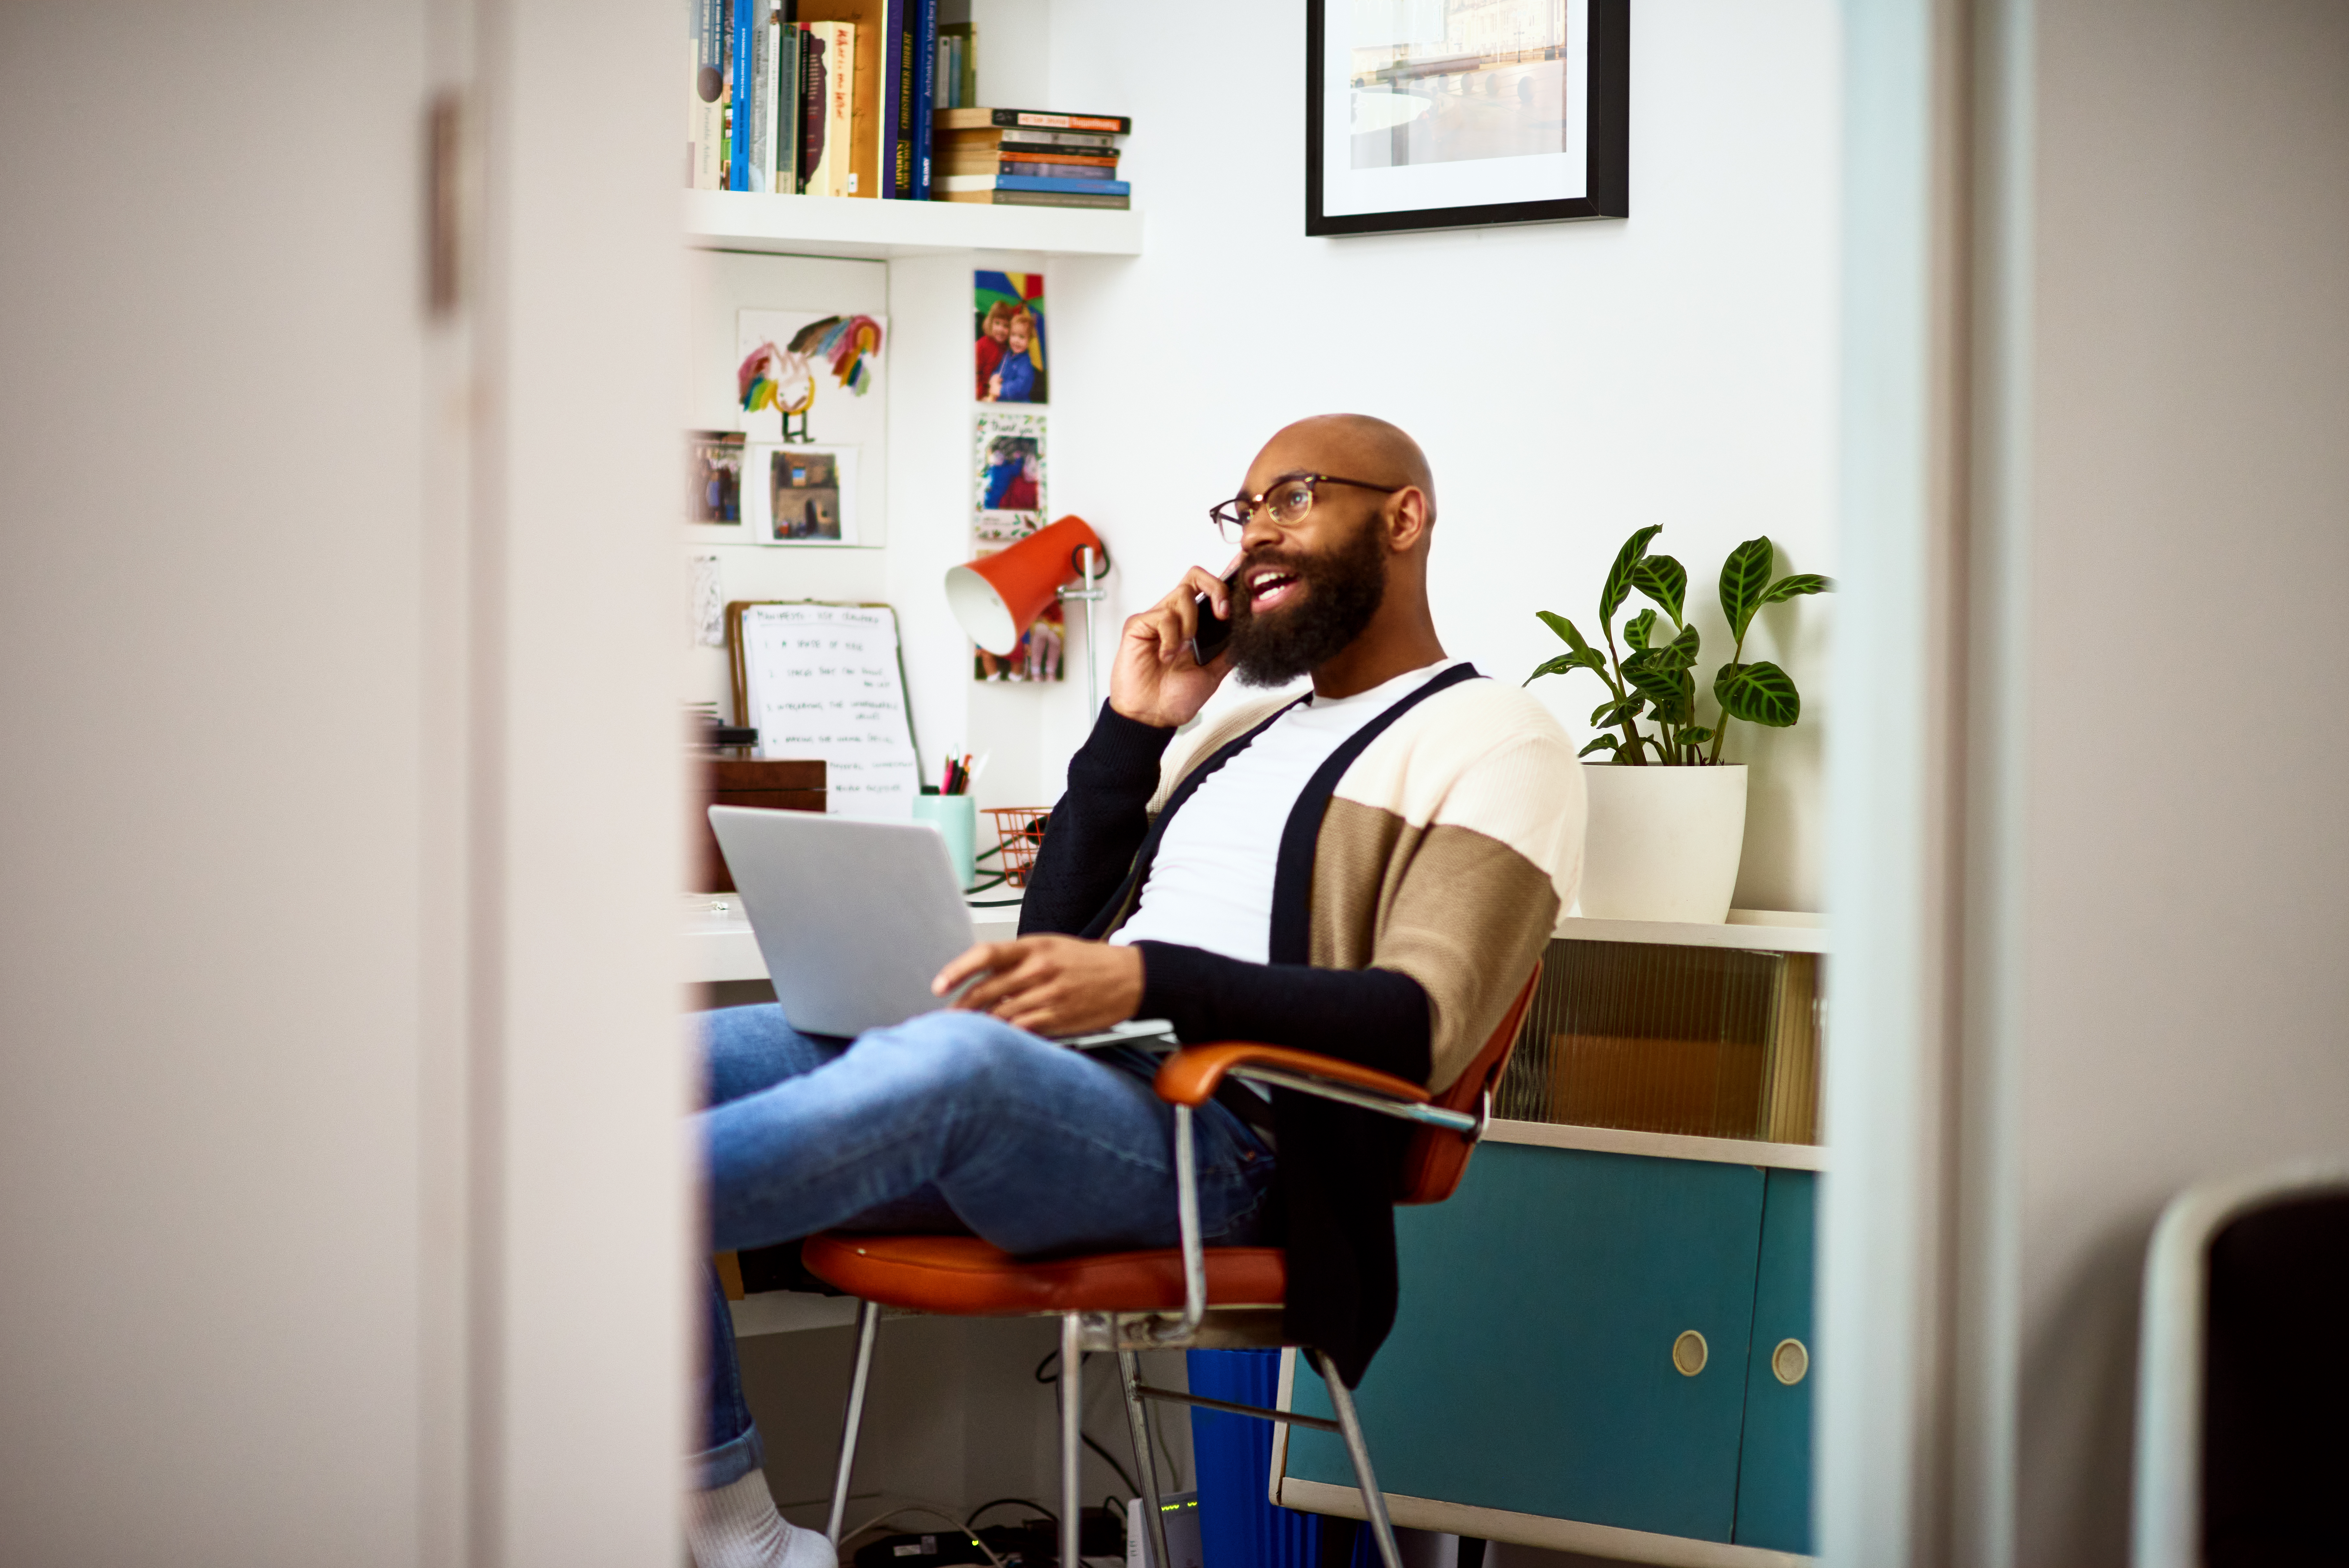 Small business owner on phone at home